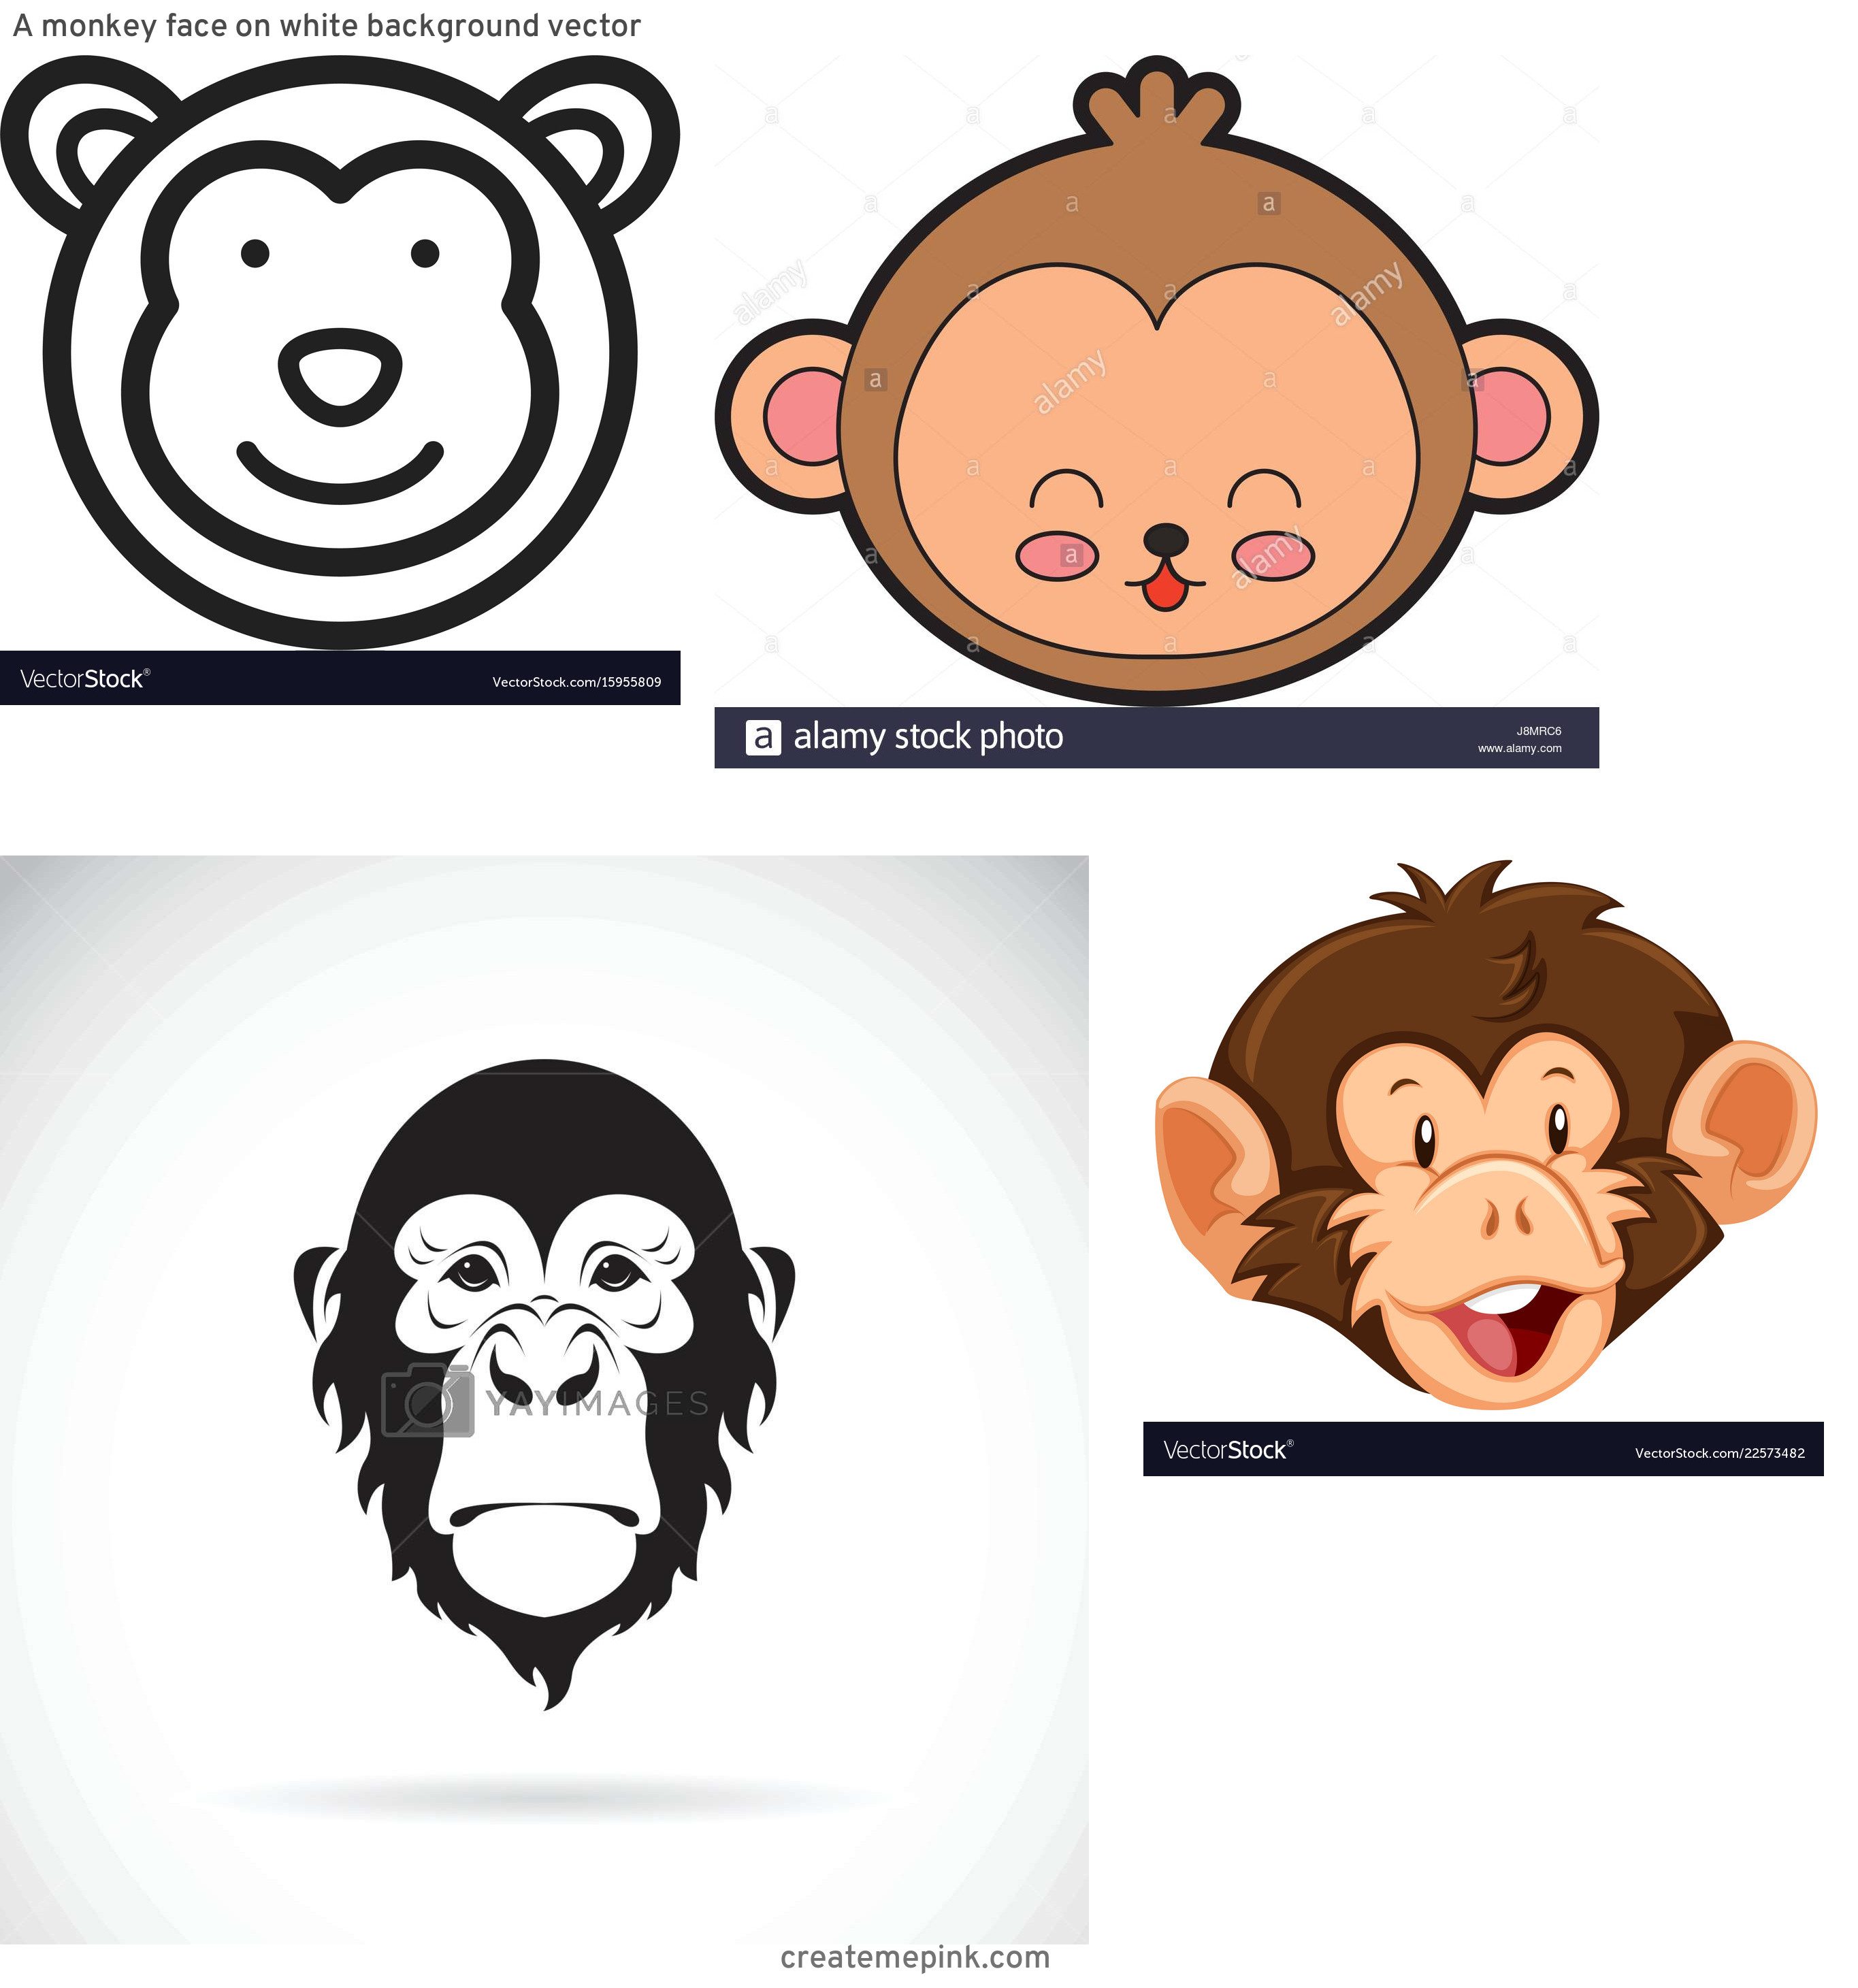 Monkey Face Vector: A Monkey Face On White Background Vector